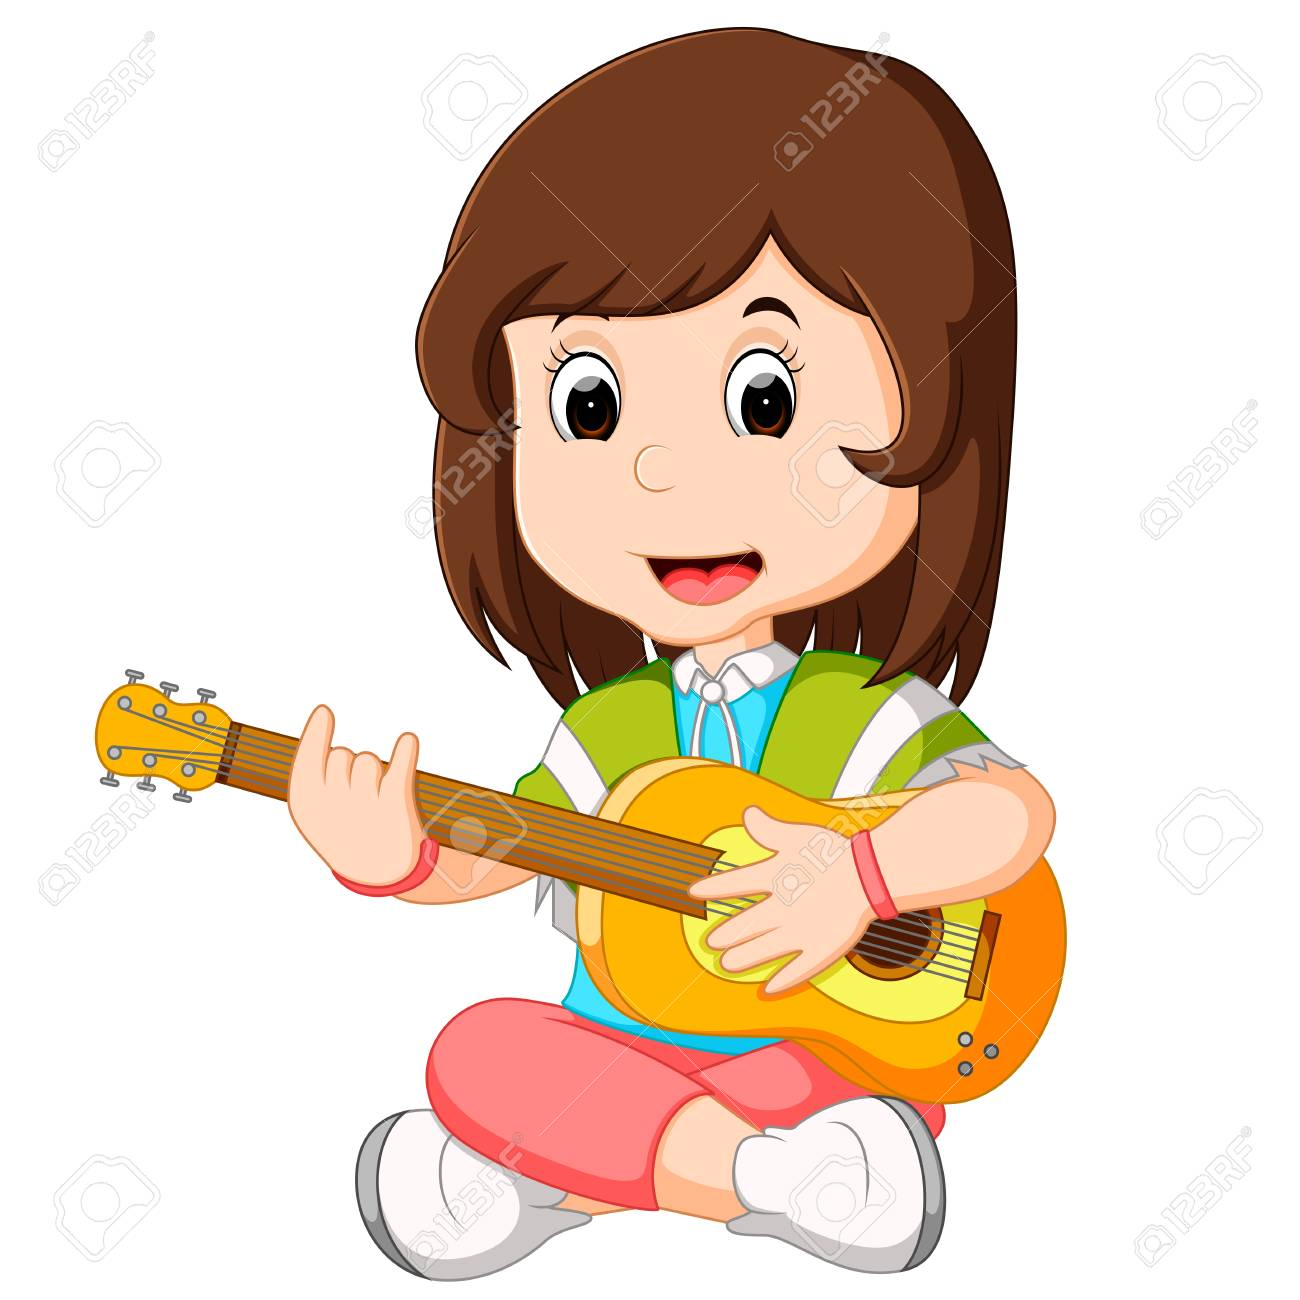 Girl playing guitar clipart 4 » Clipart Station.